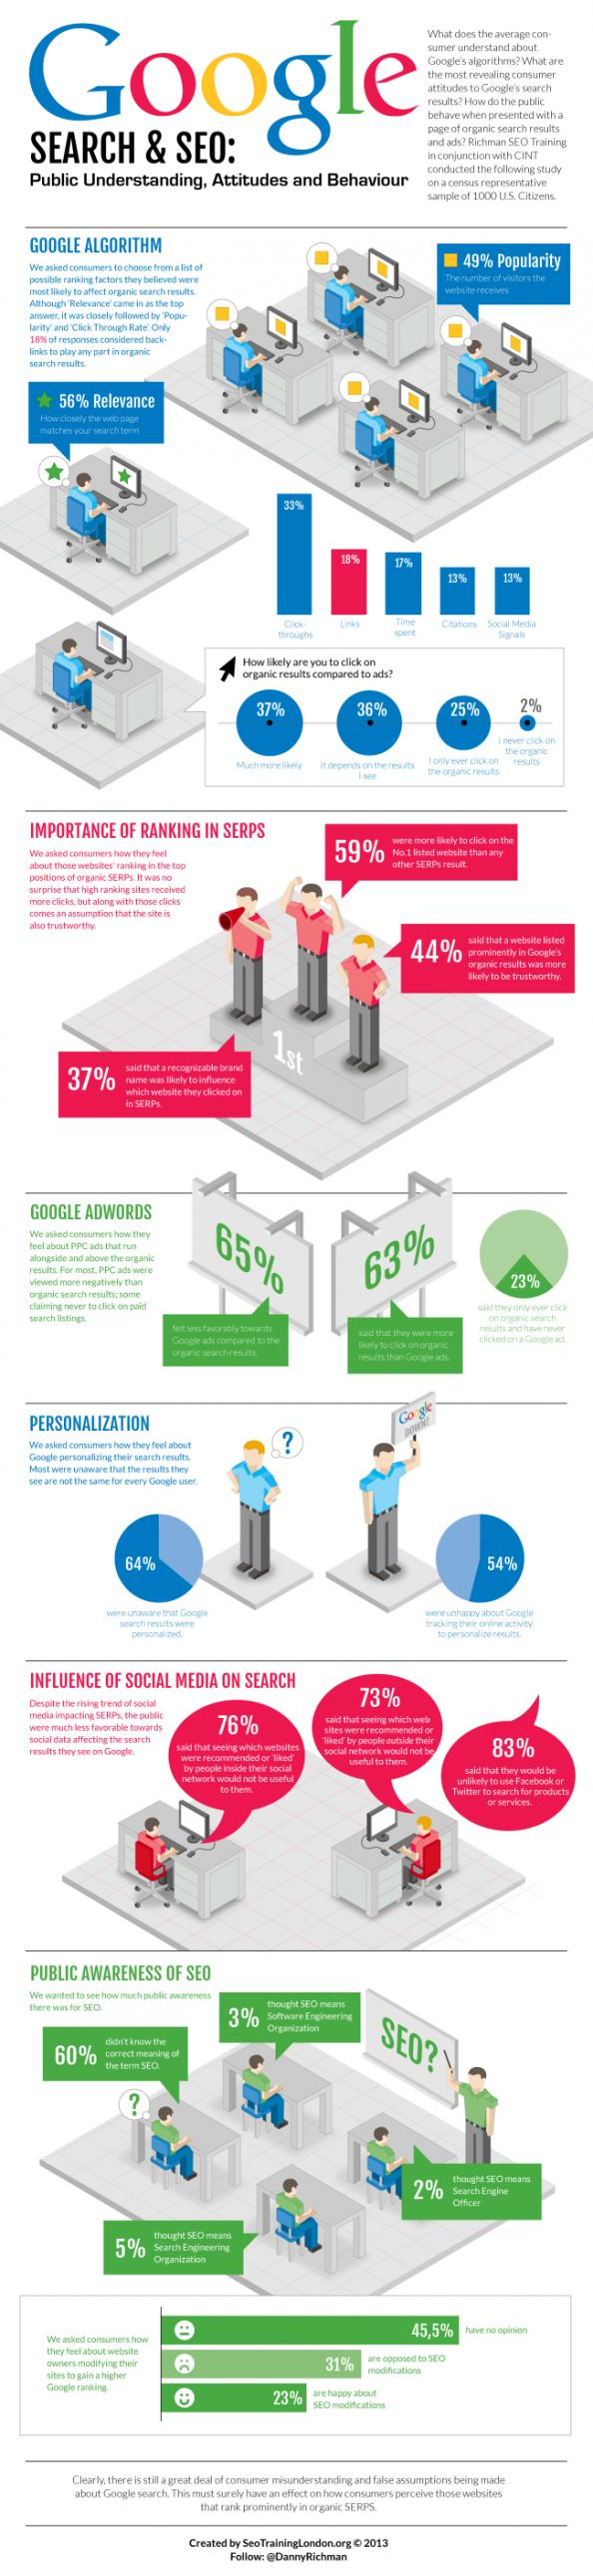 Google Search And SEO #Infographic